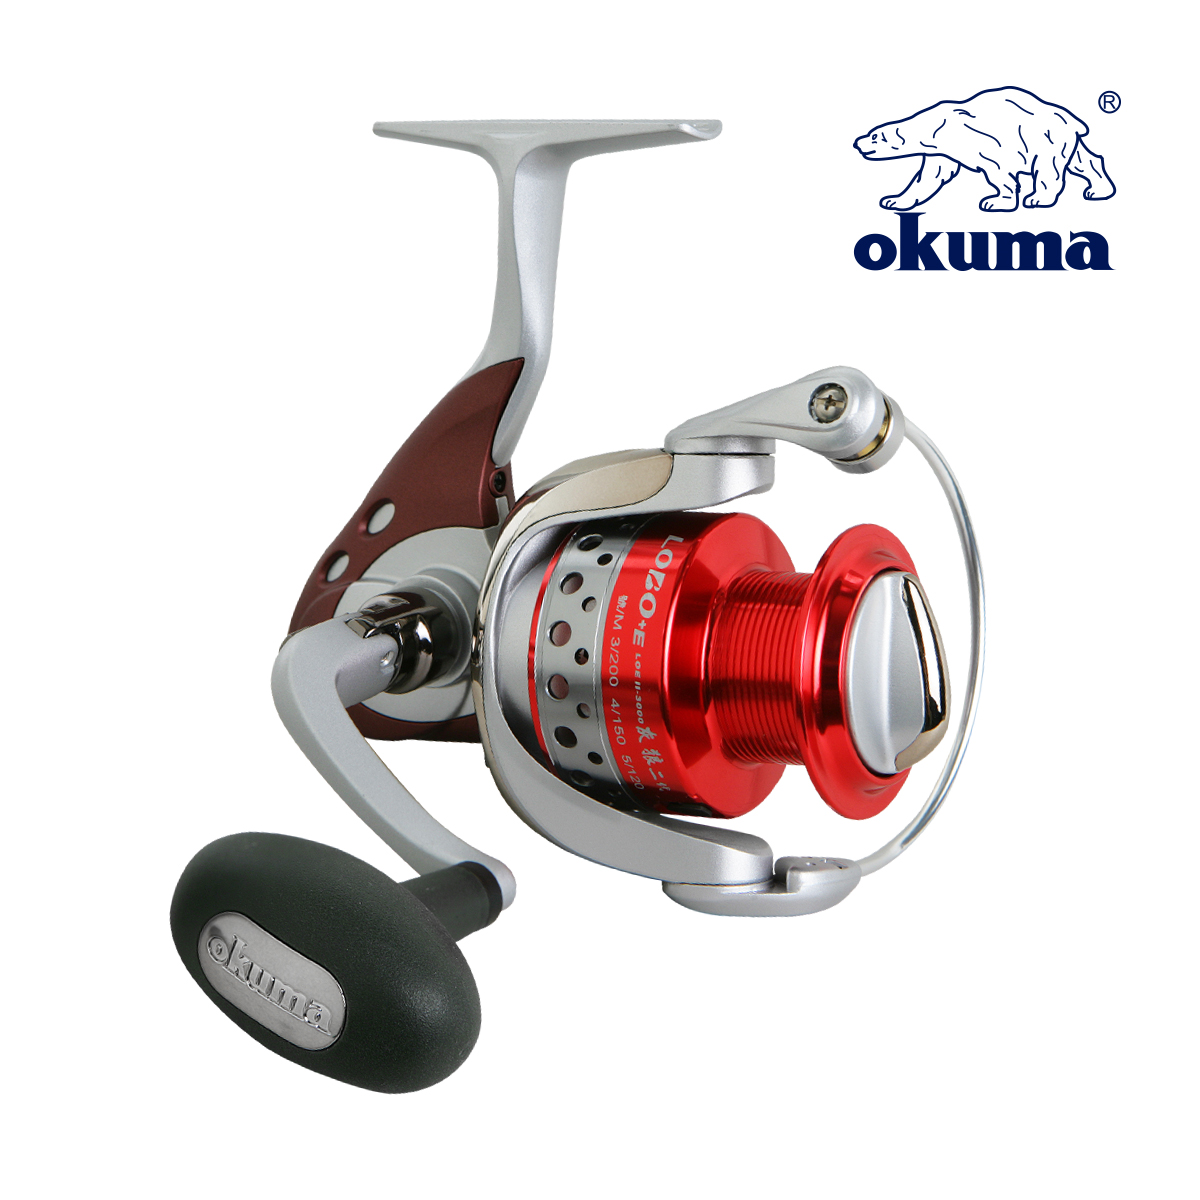 OKUMA LOE II 2000 High Quality Fishing Reel Spinning Reel Gear Ratio 5.0:1 Ball Bearing 6+1 Lure Reel Sea River Fishing Tackle